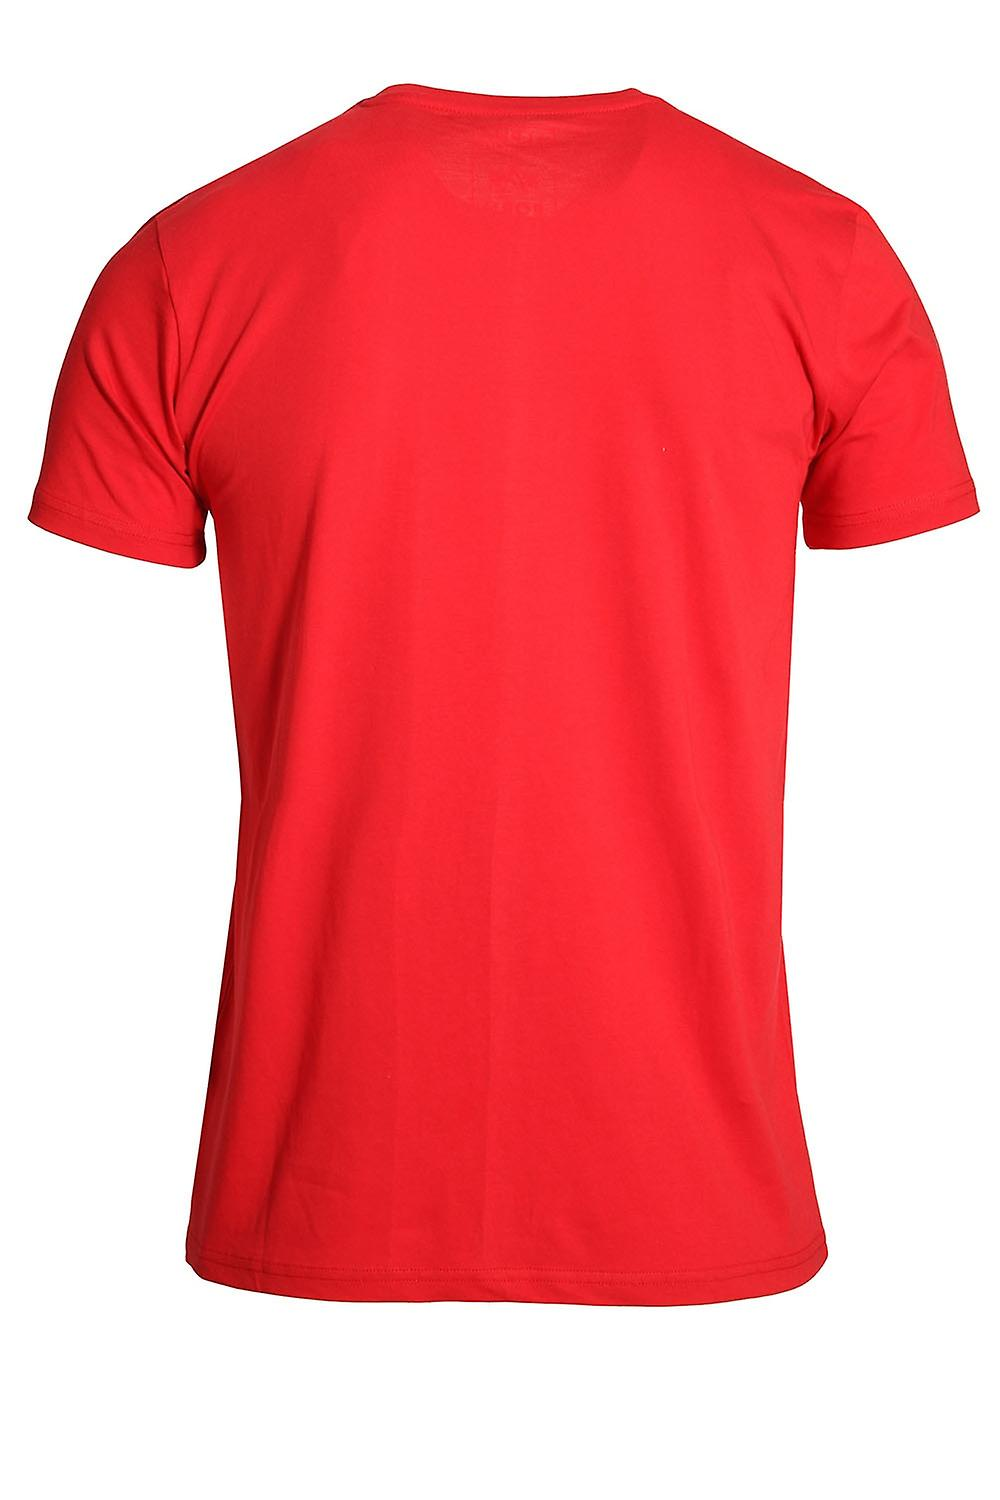 Shop eBay for great deals on Red Ape % Cotton T-Shirts for Men. You'll find new or used products in Red Ape % Cotton T-Shirts for Men on eBay. Free shipping on selected items.